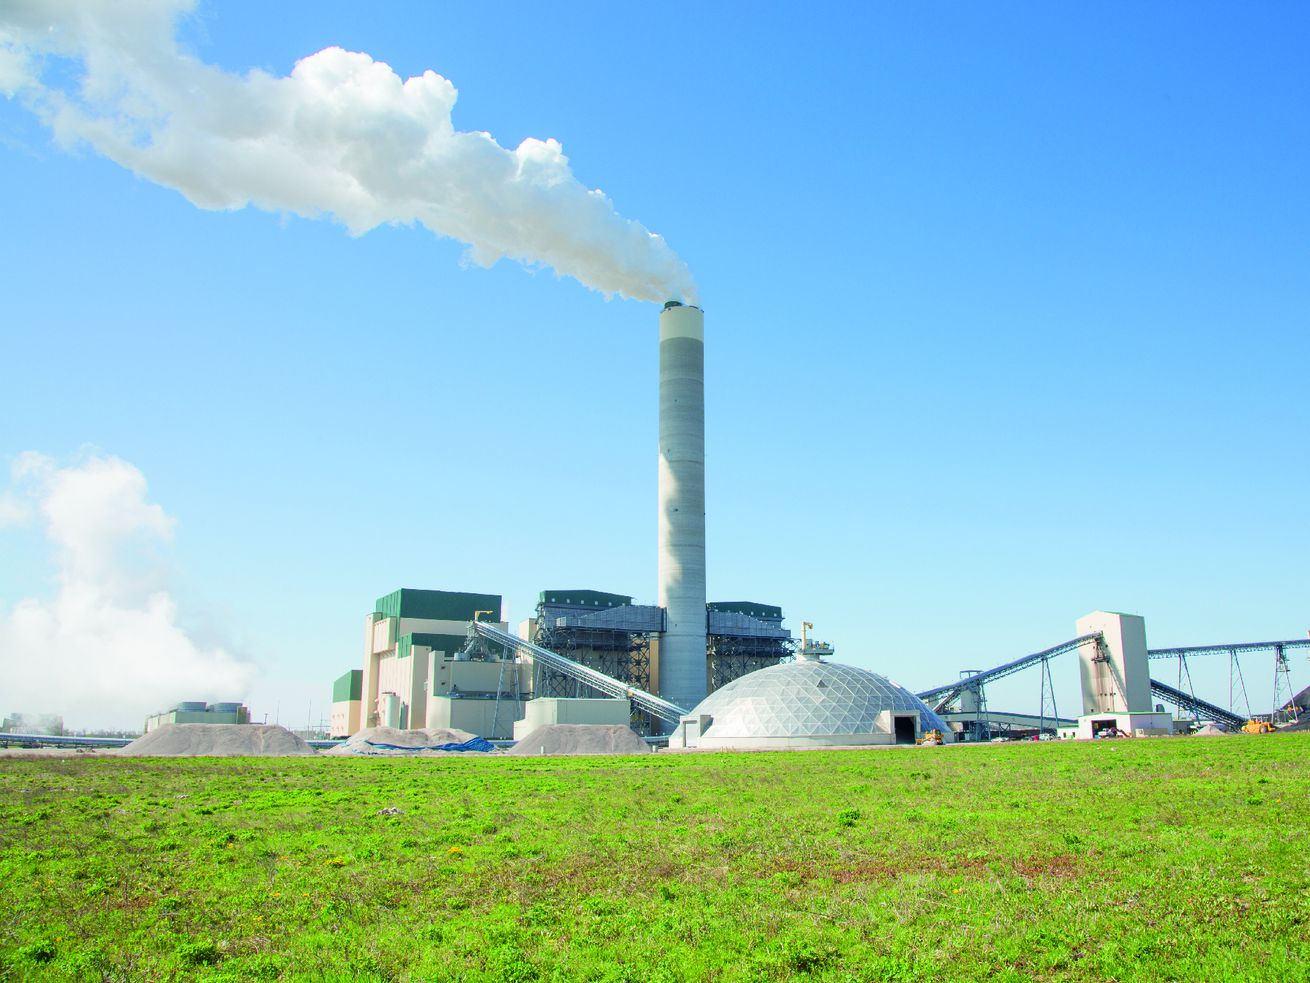 The Prairie State coal plant would shut down under a proposal being considered in Springfield that environmental groups support. But municipalities, including some in the Chicago area, that have long-term deals to buy electricity from Prairie State could end up being hit with higher prices even as they're still on the hook to pay off bonds they issued to buy in to the plant.